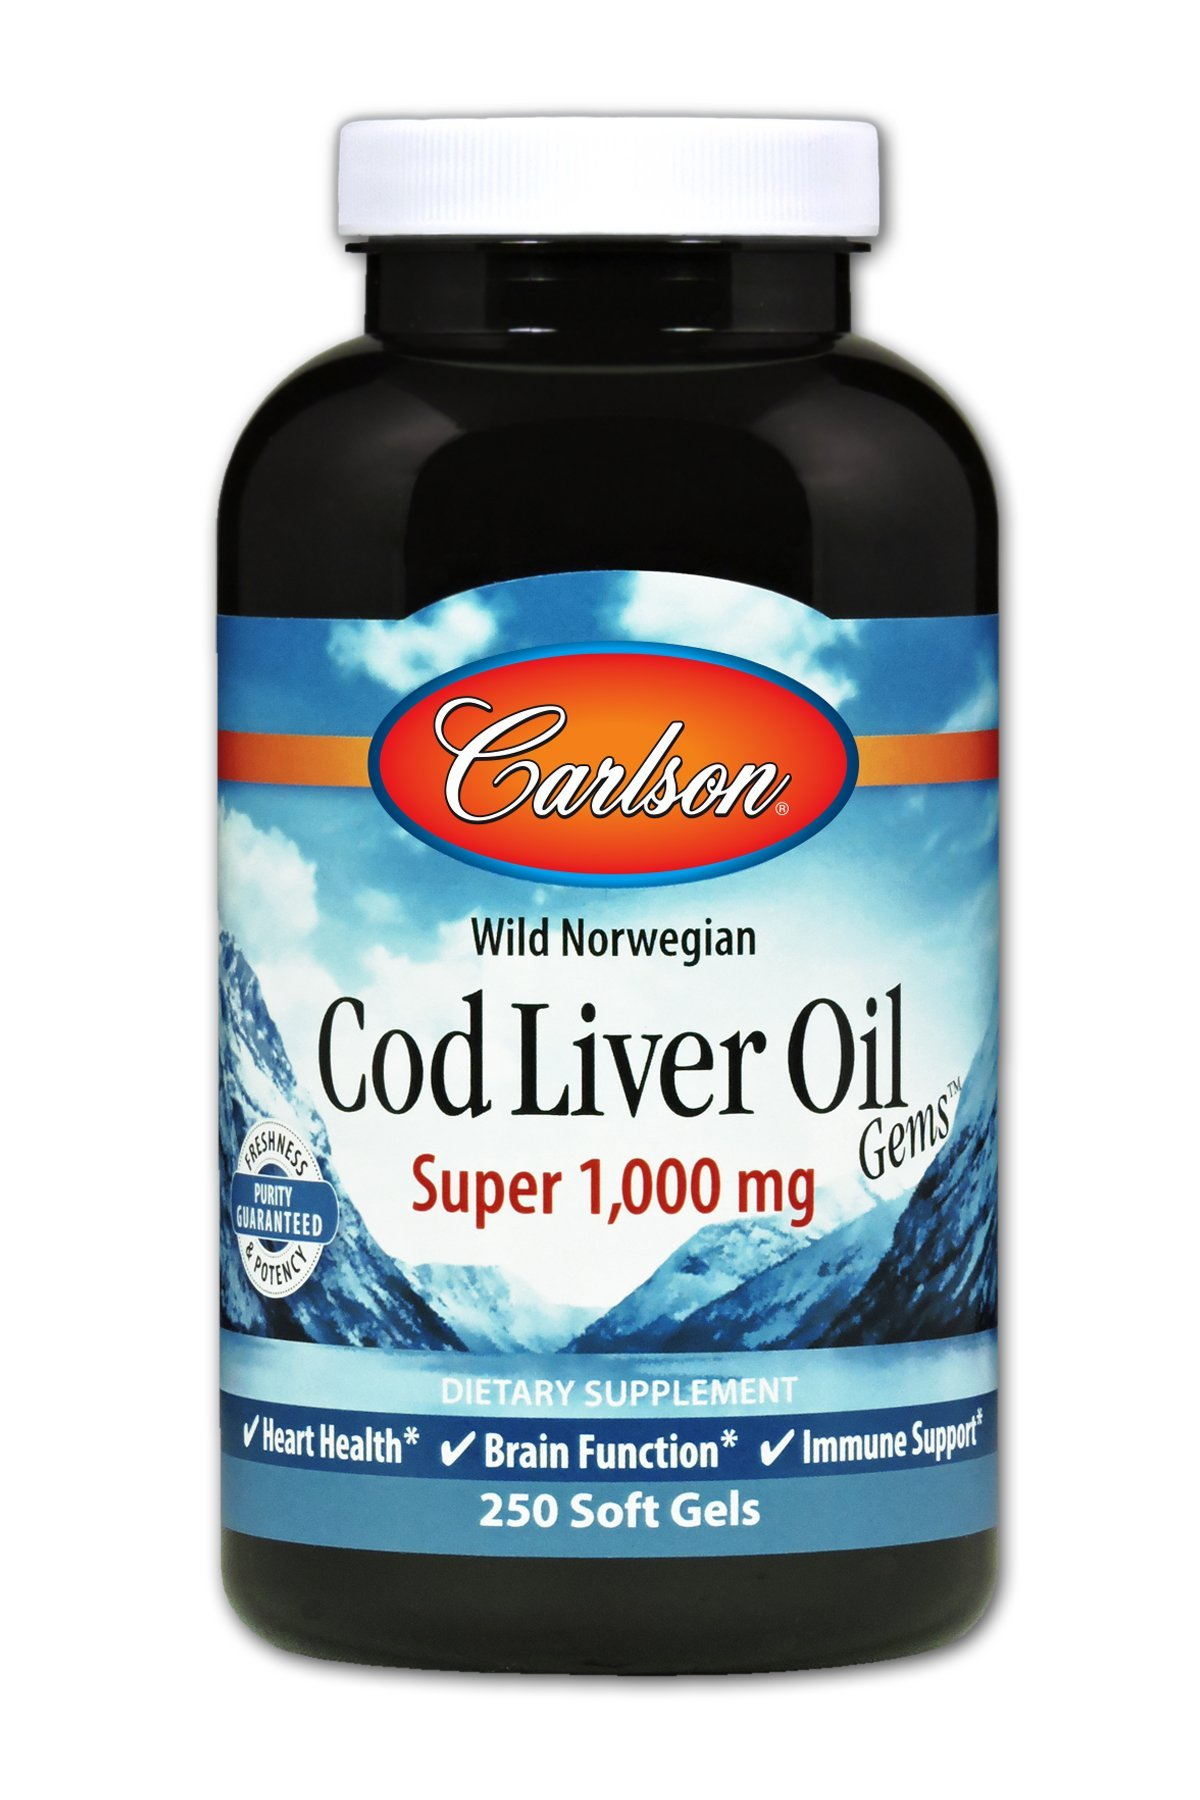 Carlson - Cod Liver Oil Gems, Super 1000 mg, 250 mg Omega-3s + Vitamins A & D3, Wild-Caught Norwegian Arctic Cod-Liver Oil, Sustainably Sourced Nordic Fish Oil Capsules, 250 Softgels